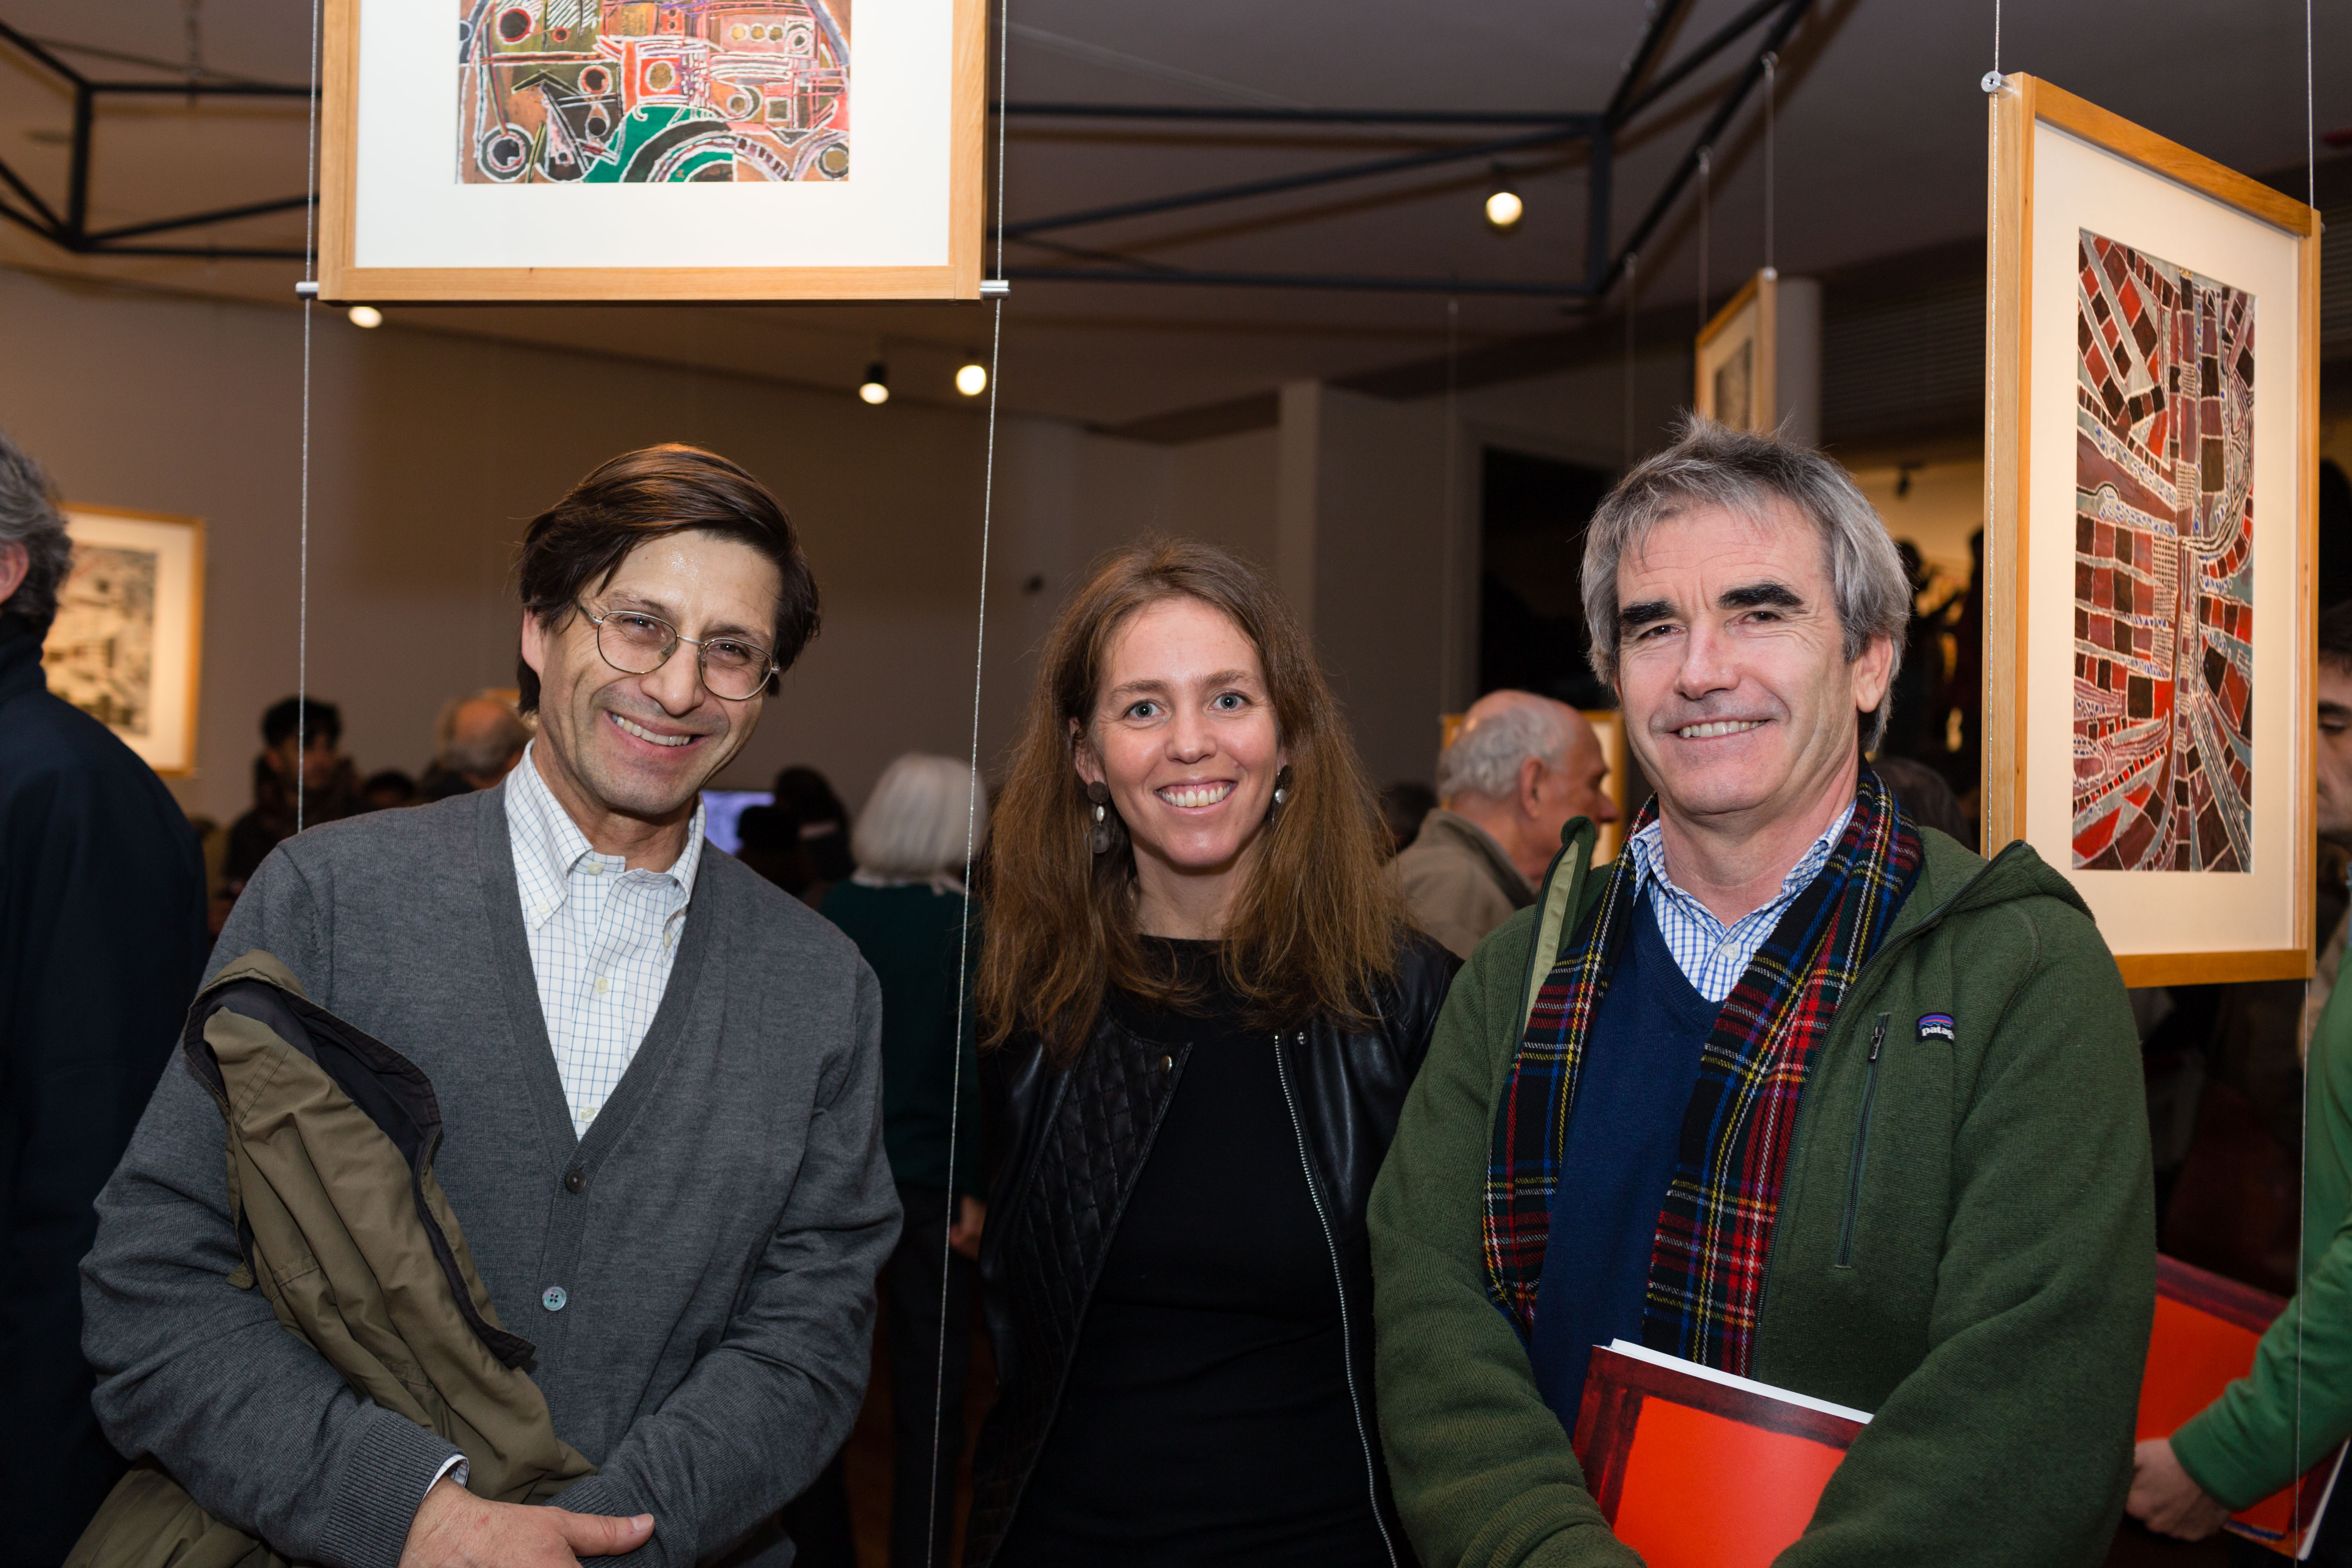 MAVI Expo Cruz - Agustín Cruz, Virginia Amenabar, Juan Rafael Arnaíz.